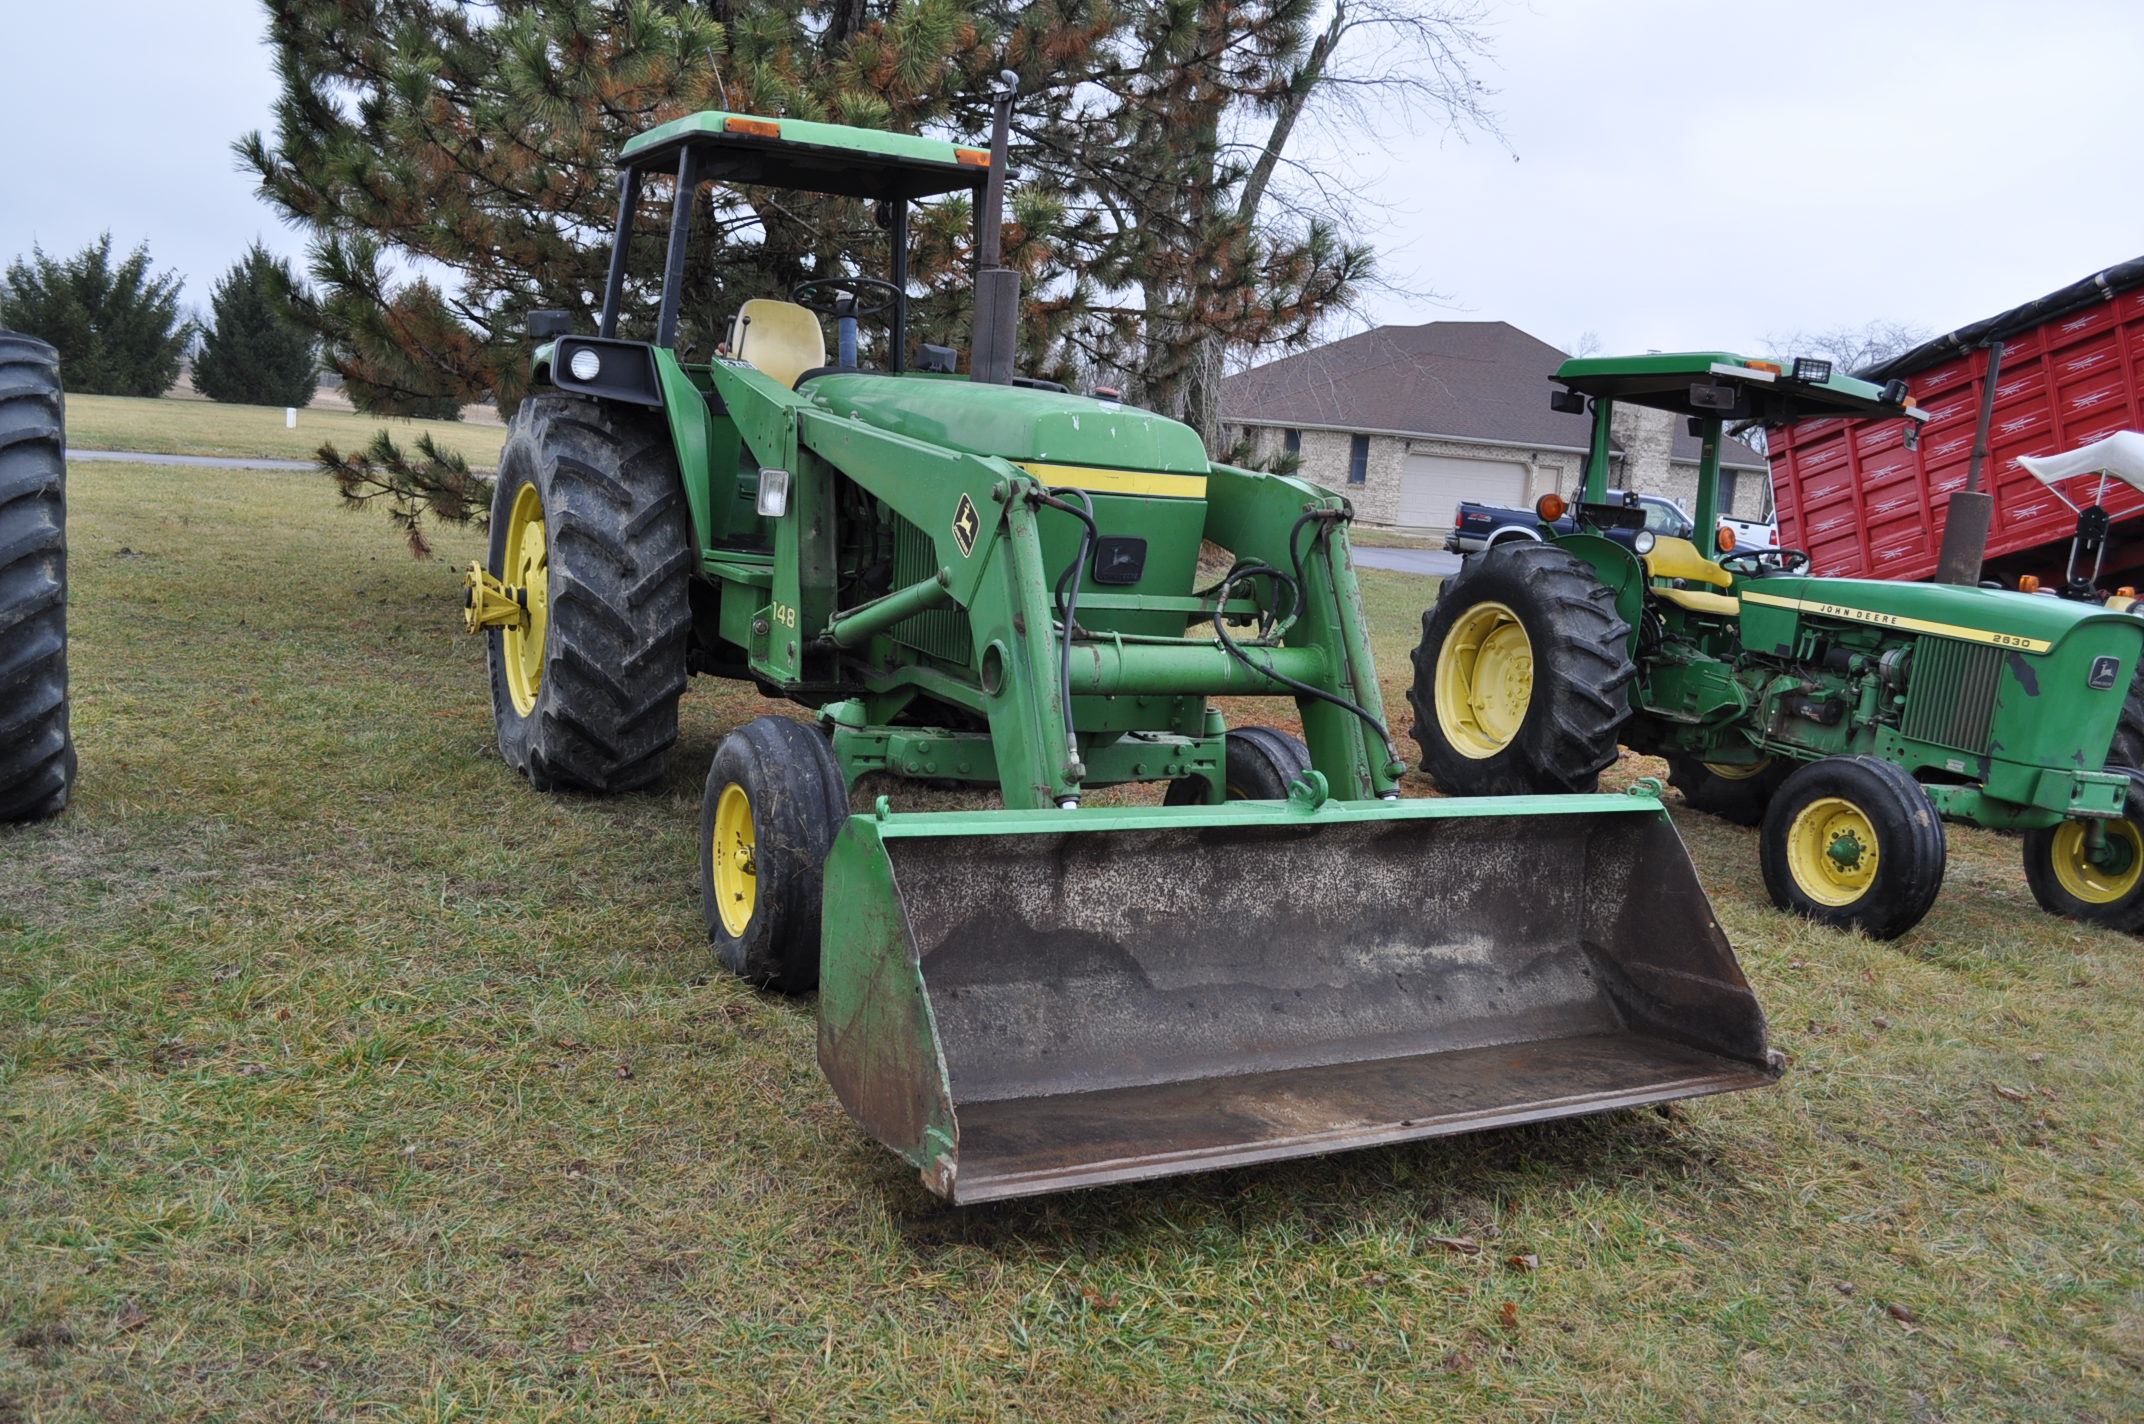 John Deere 4030 tractor, diesel, 18.4-34 rear duals, rear wts, 9.5-15 front, 4-post canopy, Syncro, - Image 4 of 26